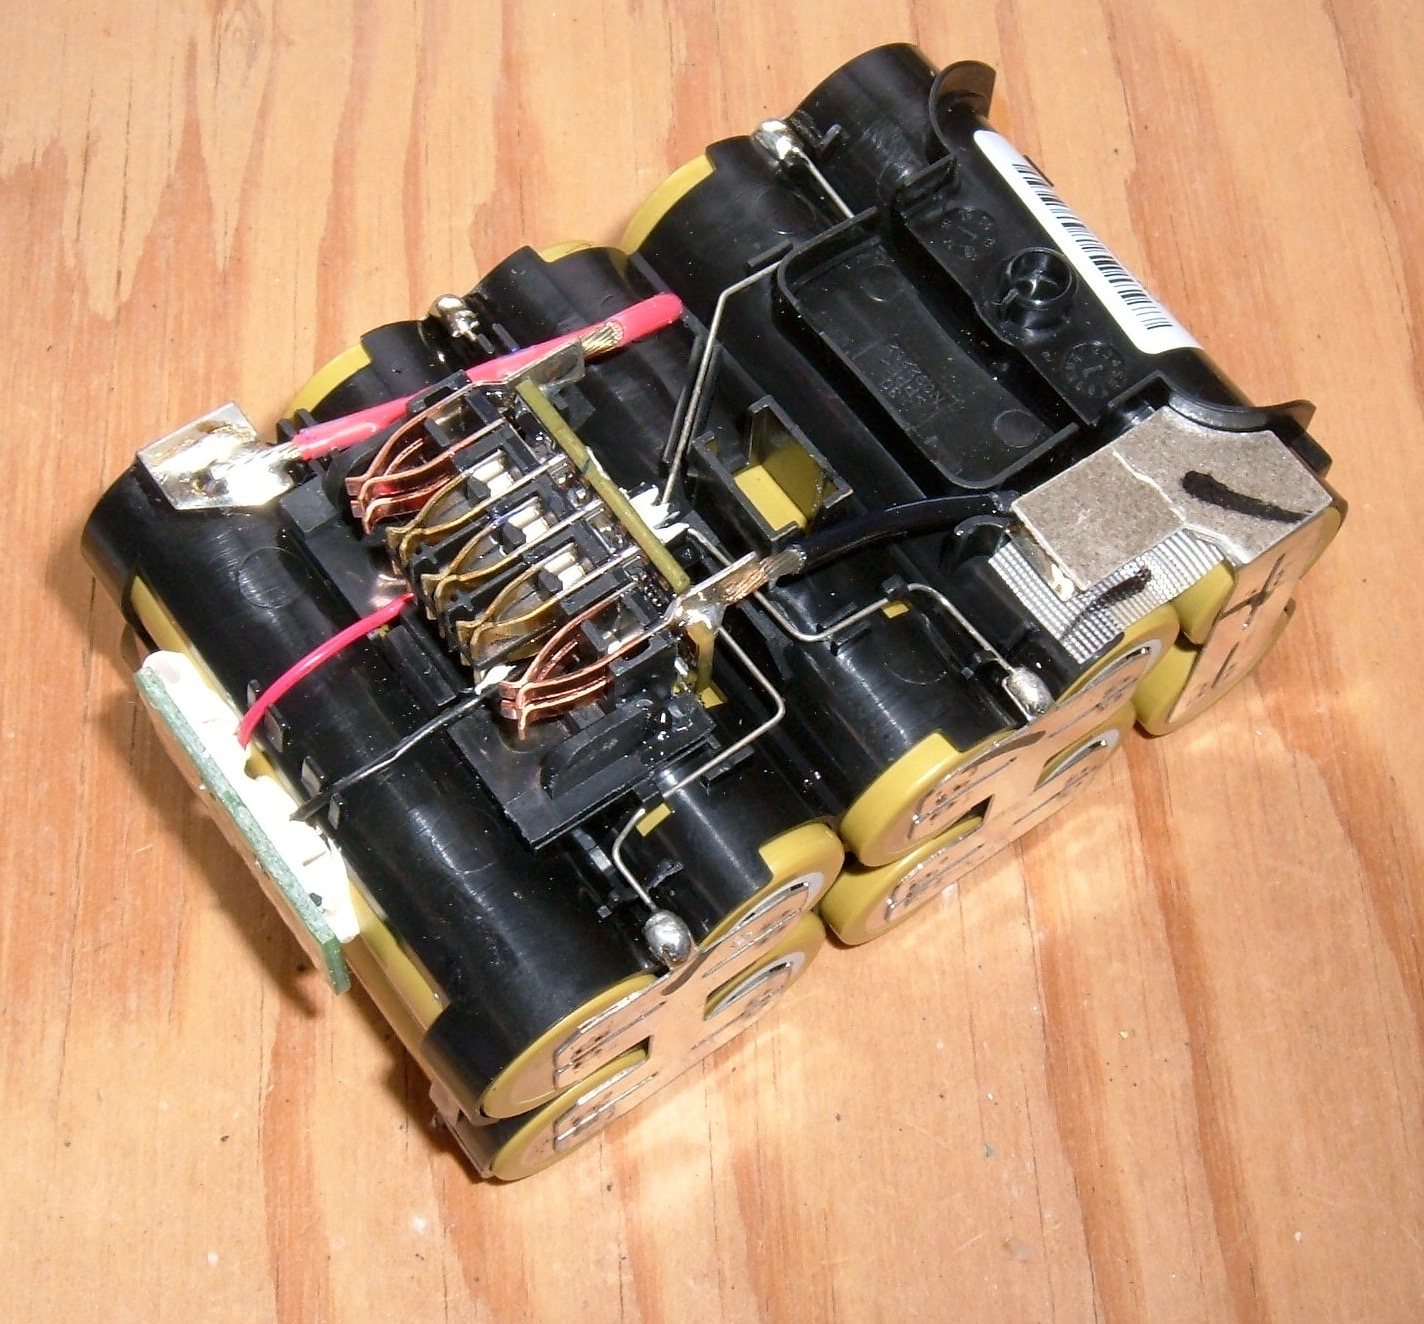 Syonyks Project Blog Dewalt 20v Max 30ah Battery Pack Teardown Of The Guage And To Positive Side Below Is A Diagram Led Board Secured With Some Sort Goop Its Not Going Anywhere